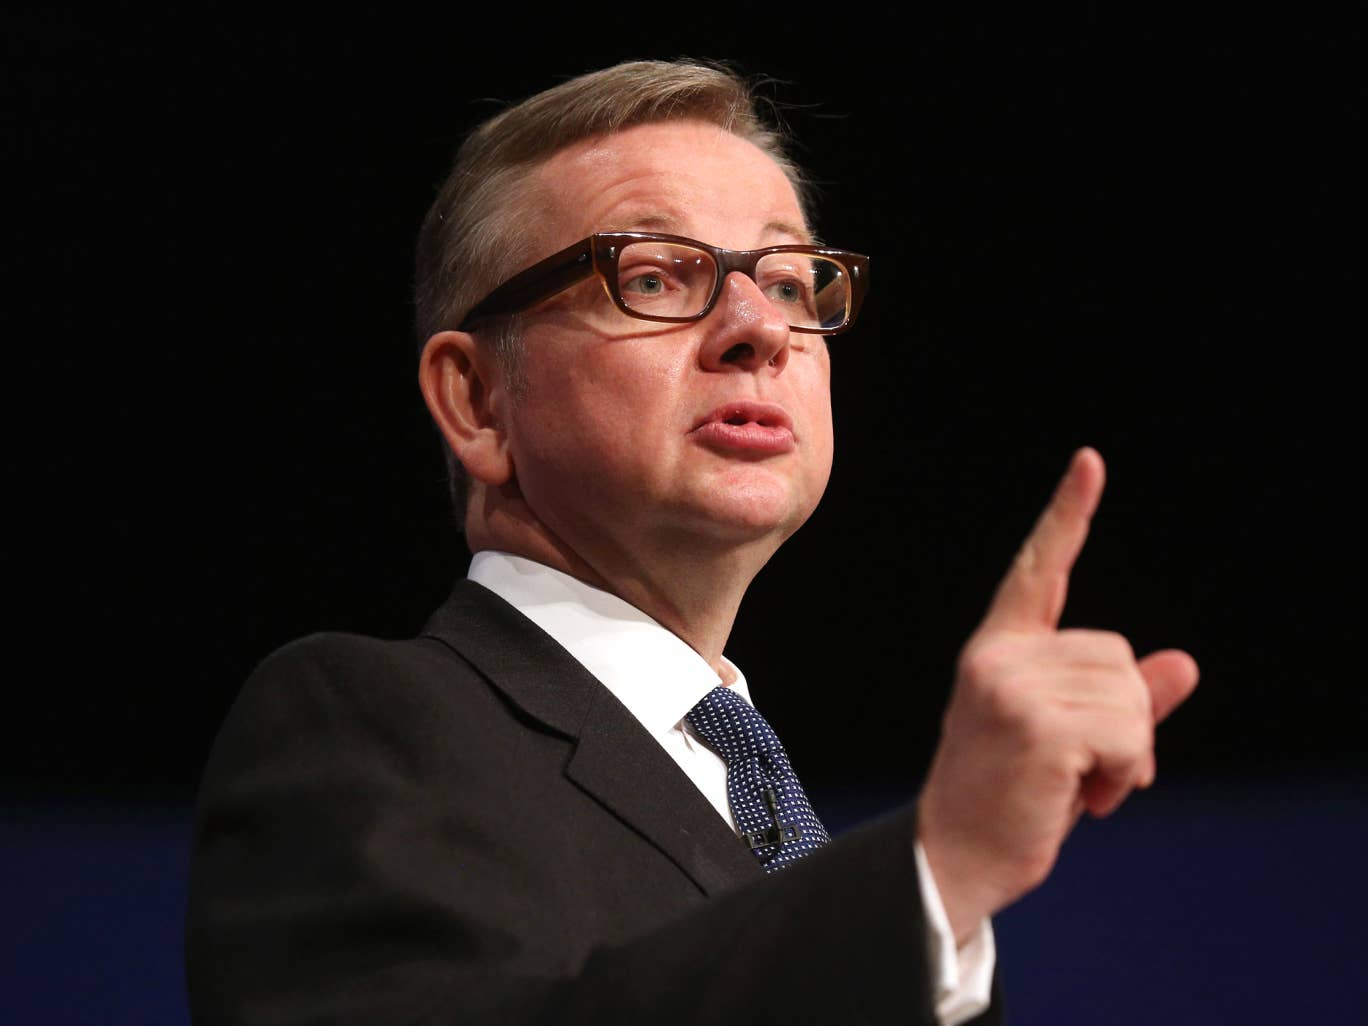 Michael Gove, Secretary of State for Education